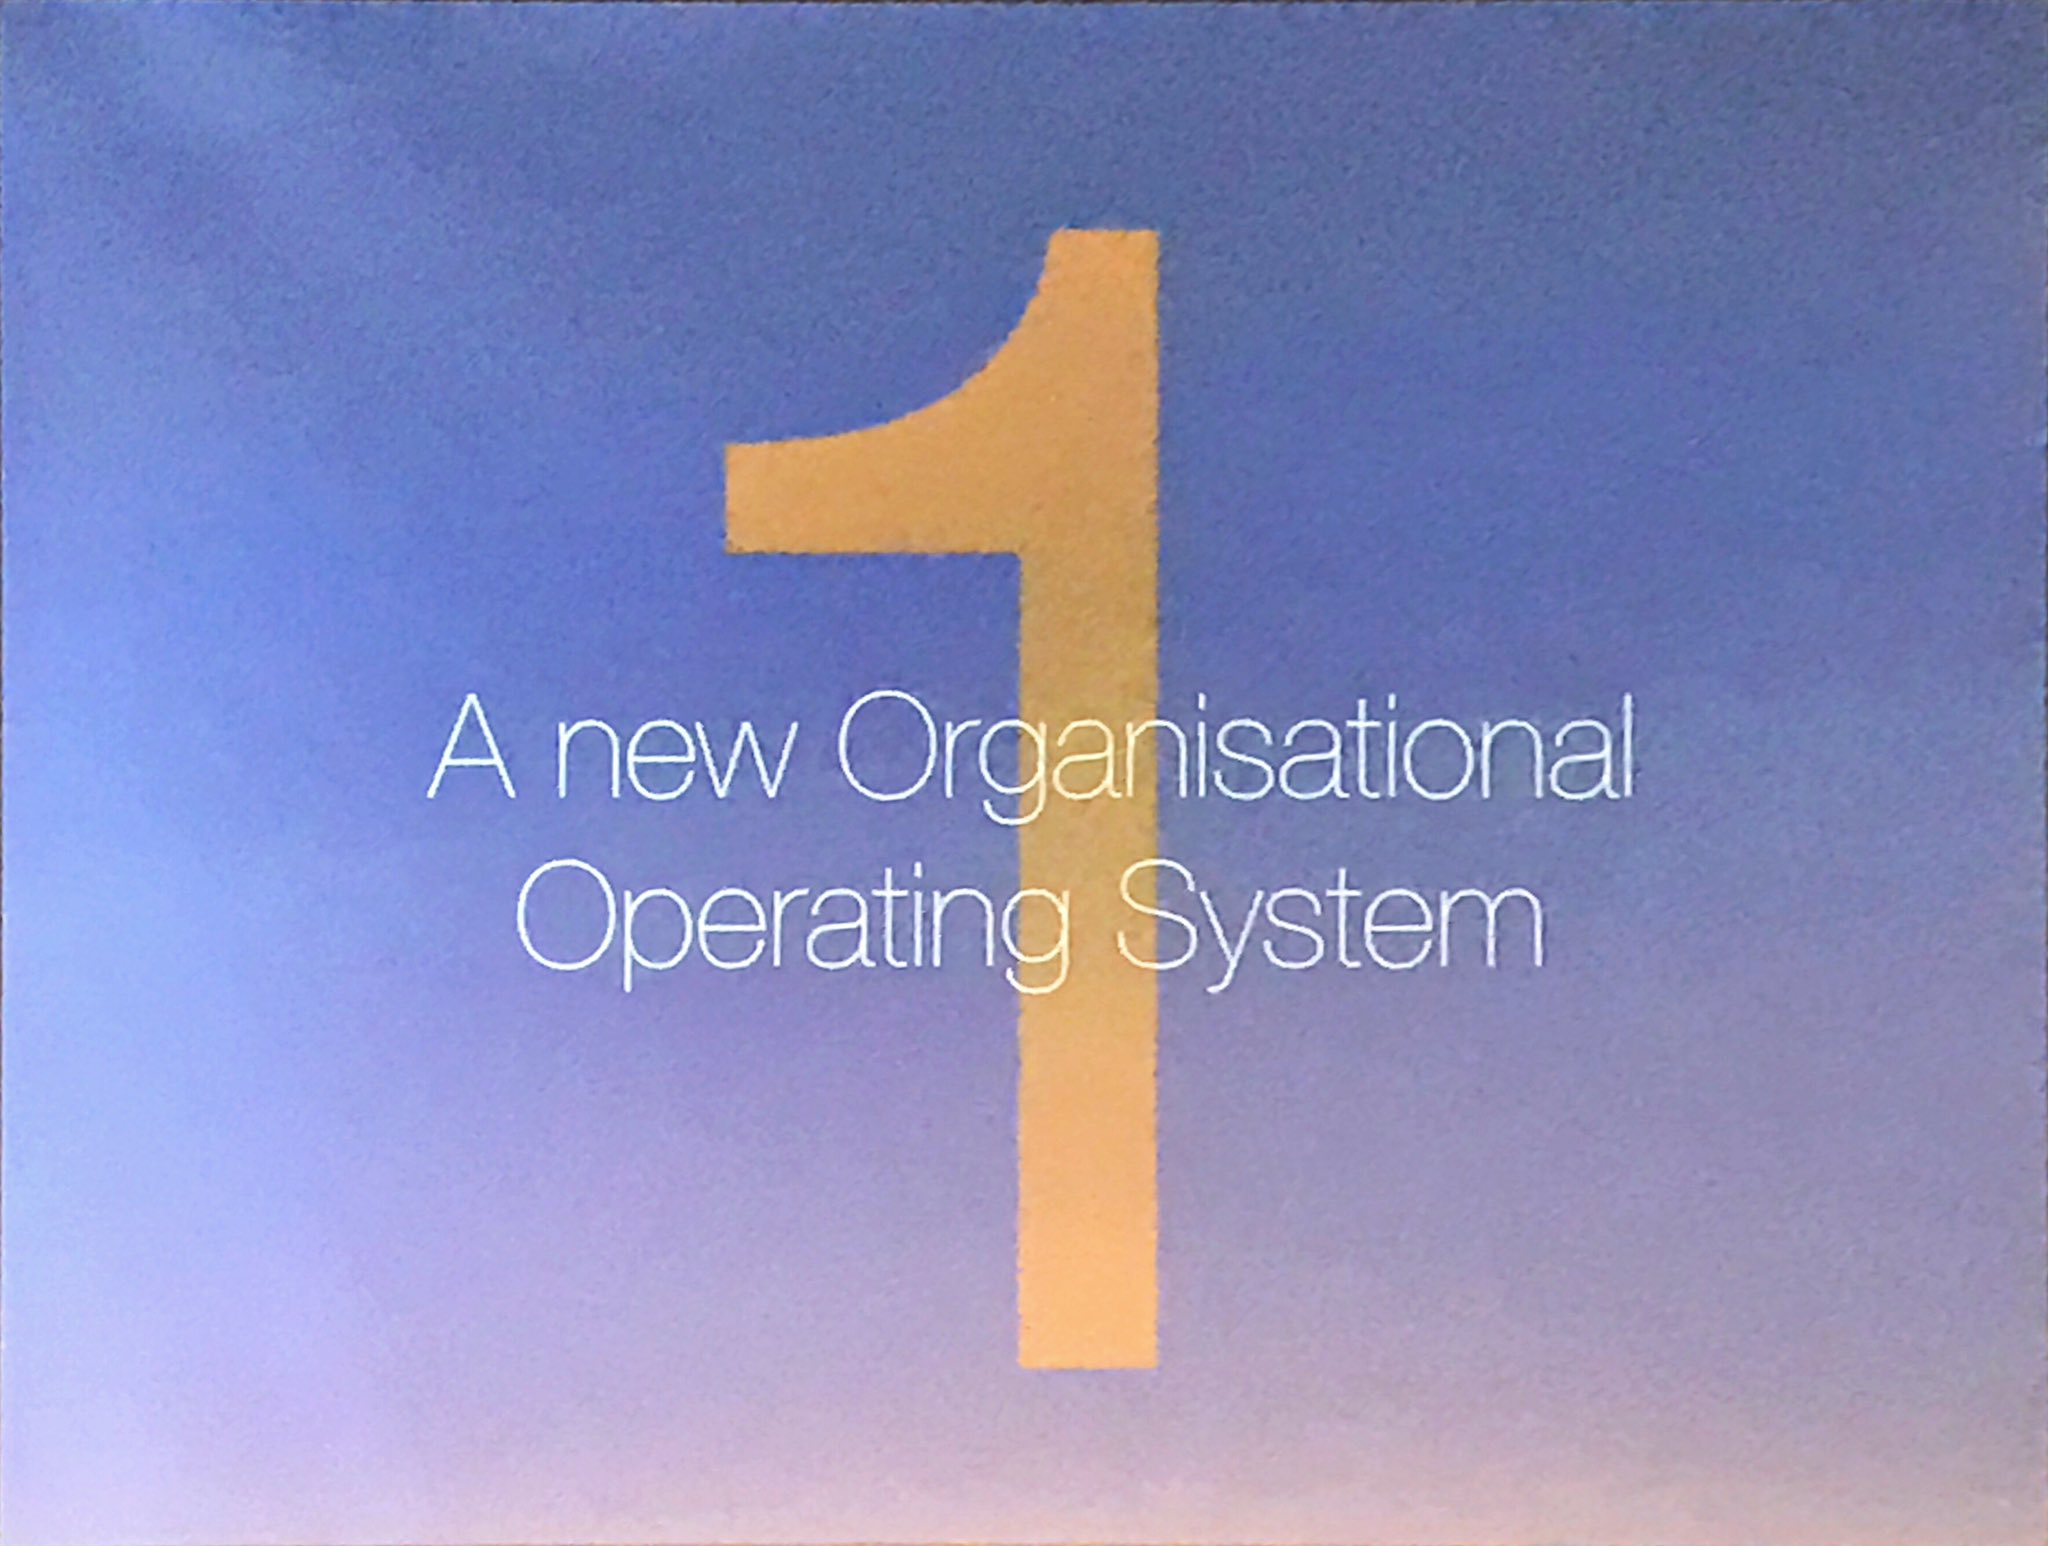 At #ioms16, @leebryant shows the new operating system of business: from #verticals to horizontally integrating #API. https://t.co/fffLJJuPDk